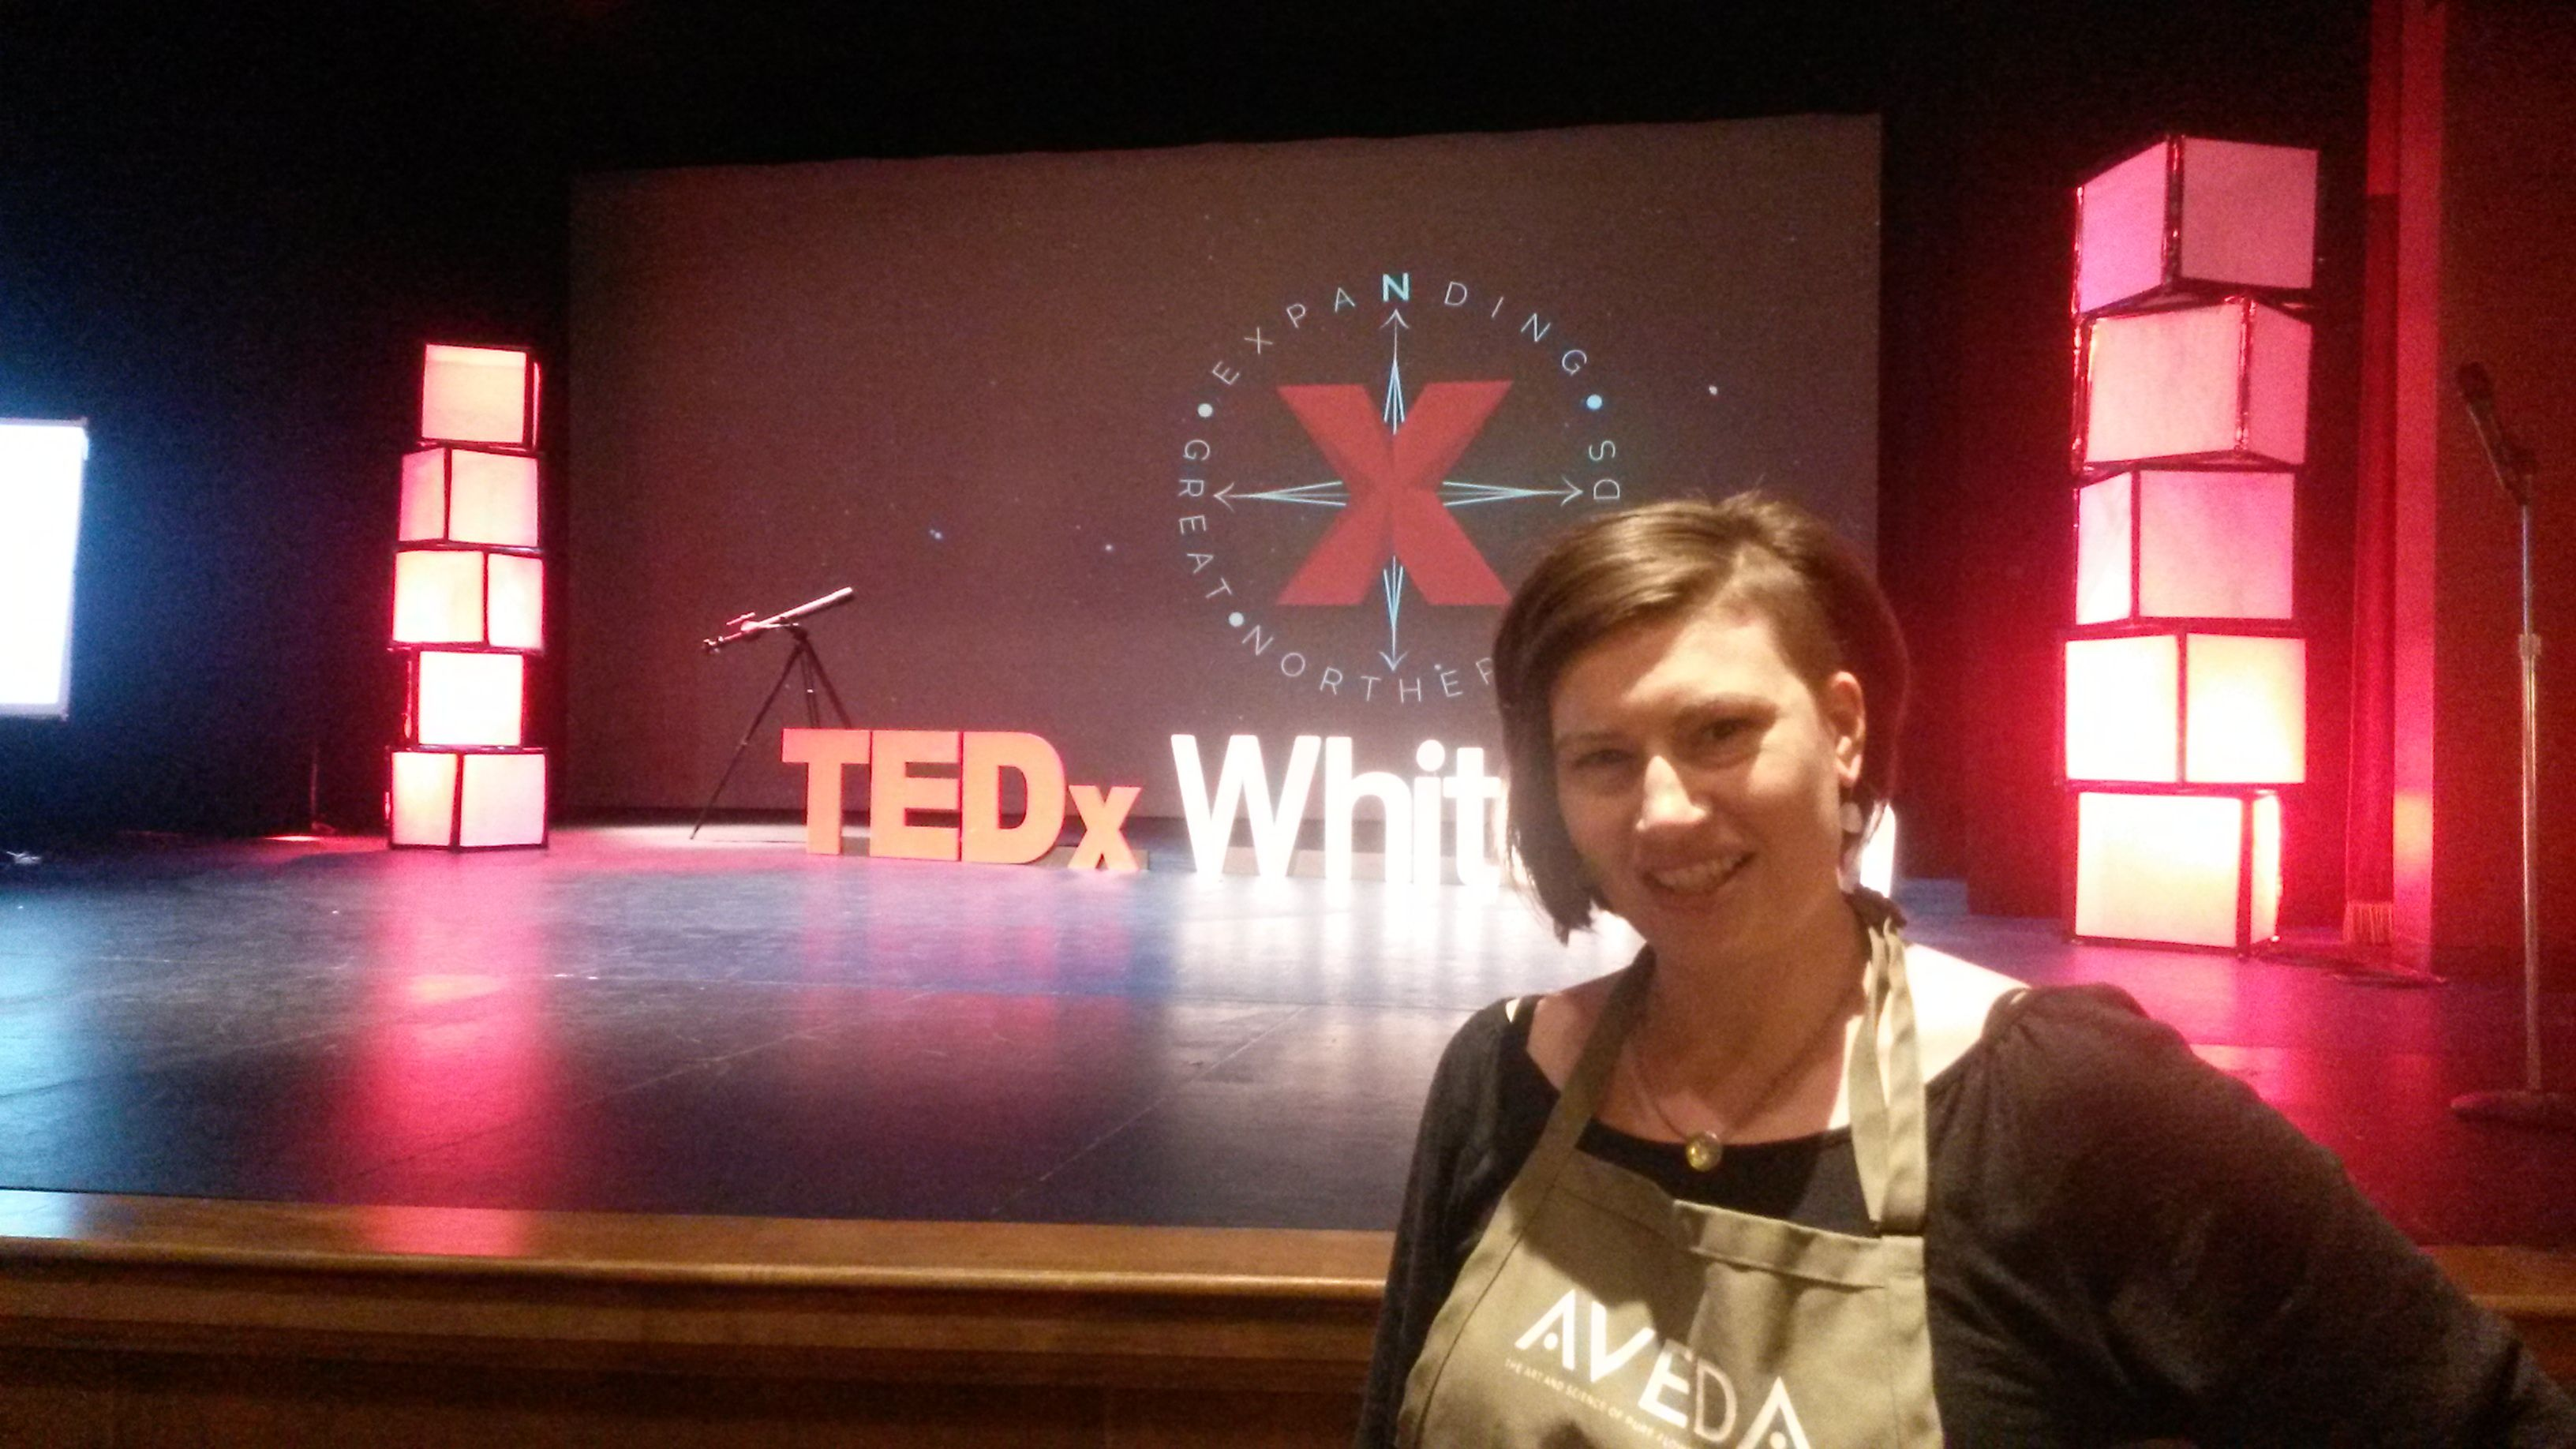 Angie does makeup for TedX!TEDx Whitefish happened on May 4th, 2015 at the Whitefish Performing Arts CenterWHAT IS TED? TEDX?TED is a nonprofit organization devoted to Ideas Worth Spreading and the acronym stands for Technology, Entertainment, and Design. #reeciasalonandspa #avedasalon